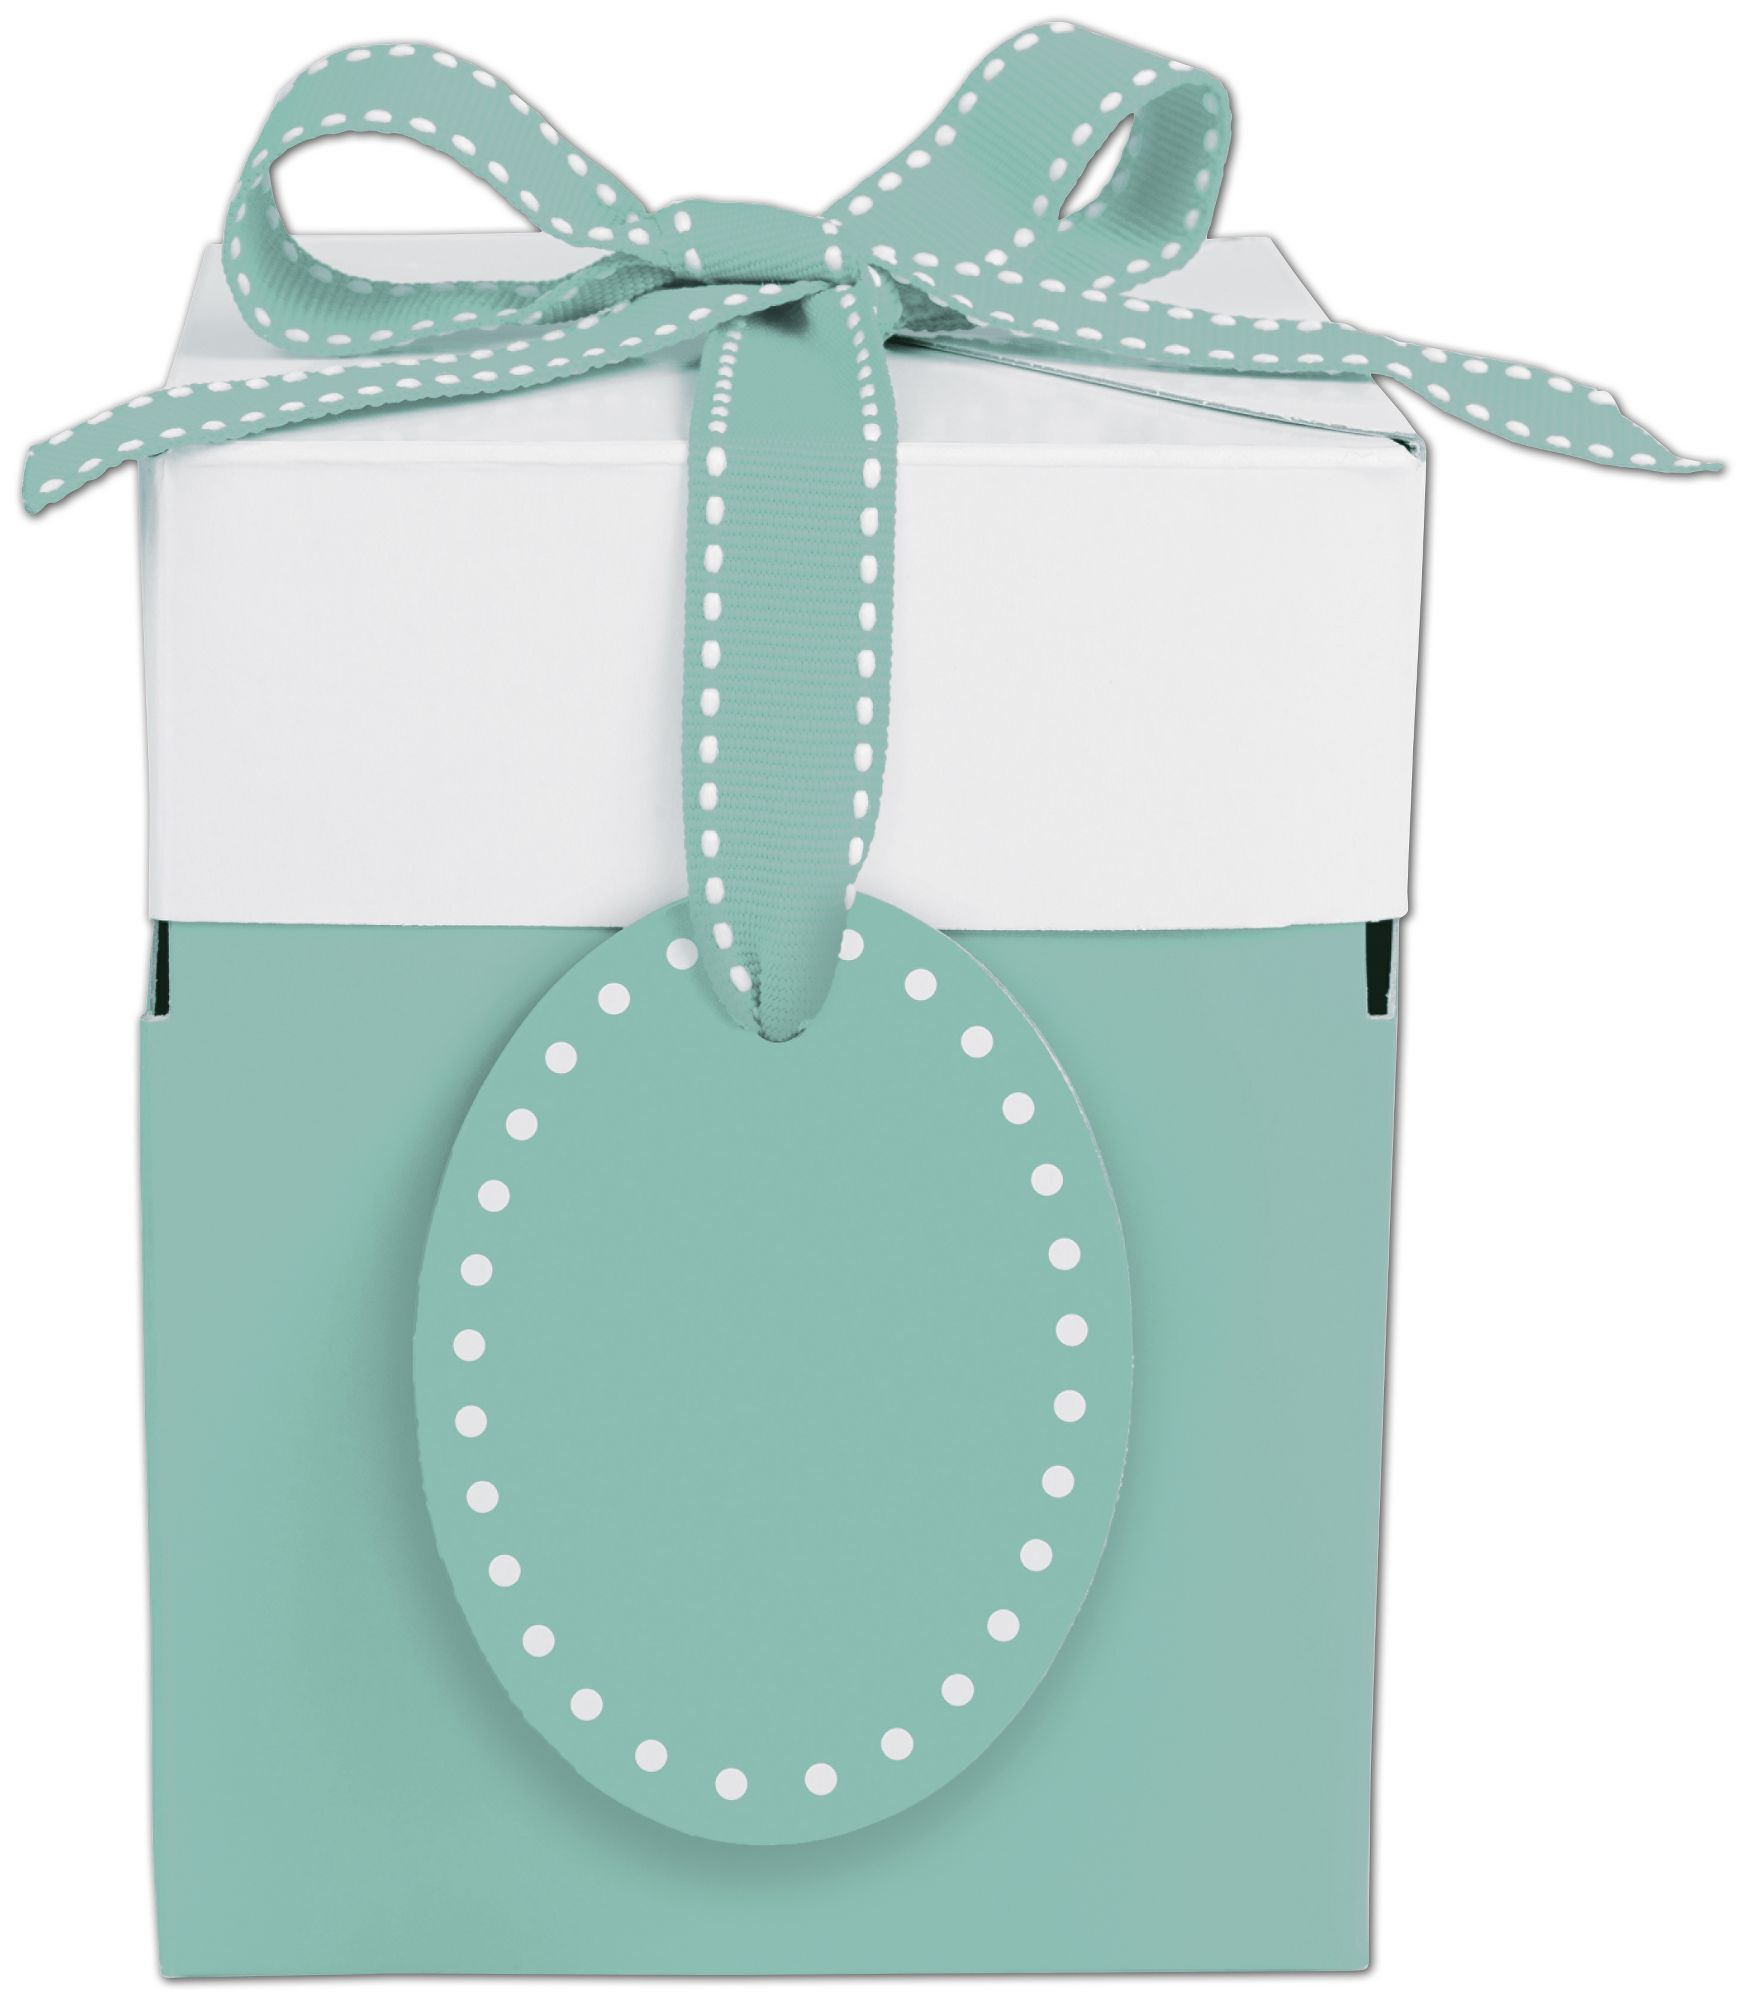 "Bottoms-Up Blue Giftalicious Pop-Up Boxes, 4 x 4 x 4 3/4"" (10 Boxes) - BOWS-4129-6557"